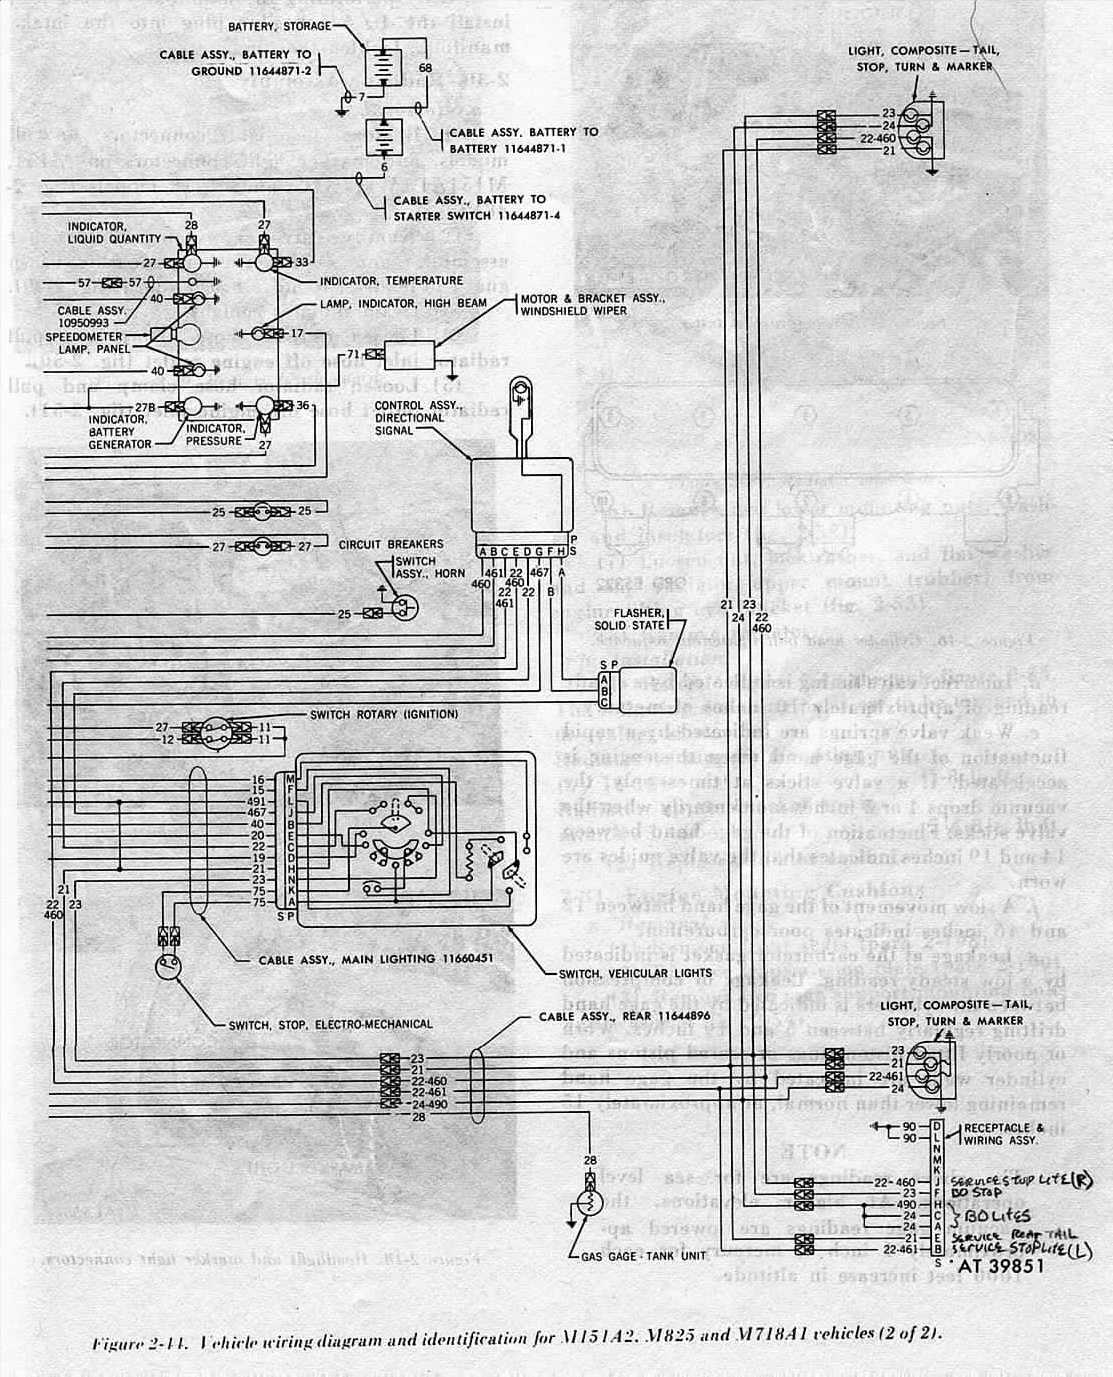 m715 wiring diagram 02 rav4 engine diagram general